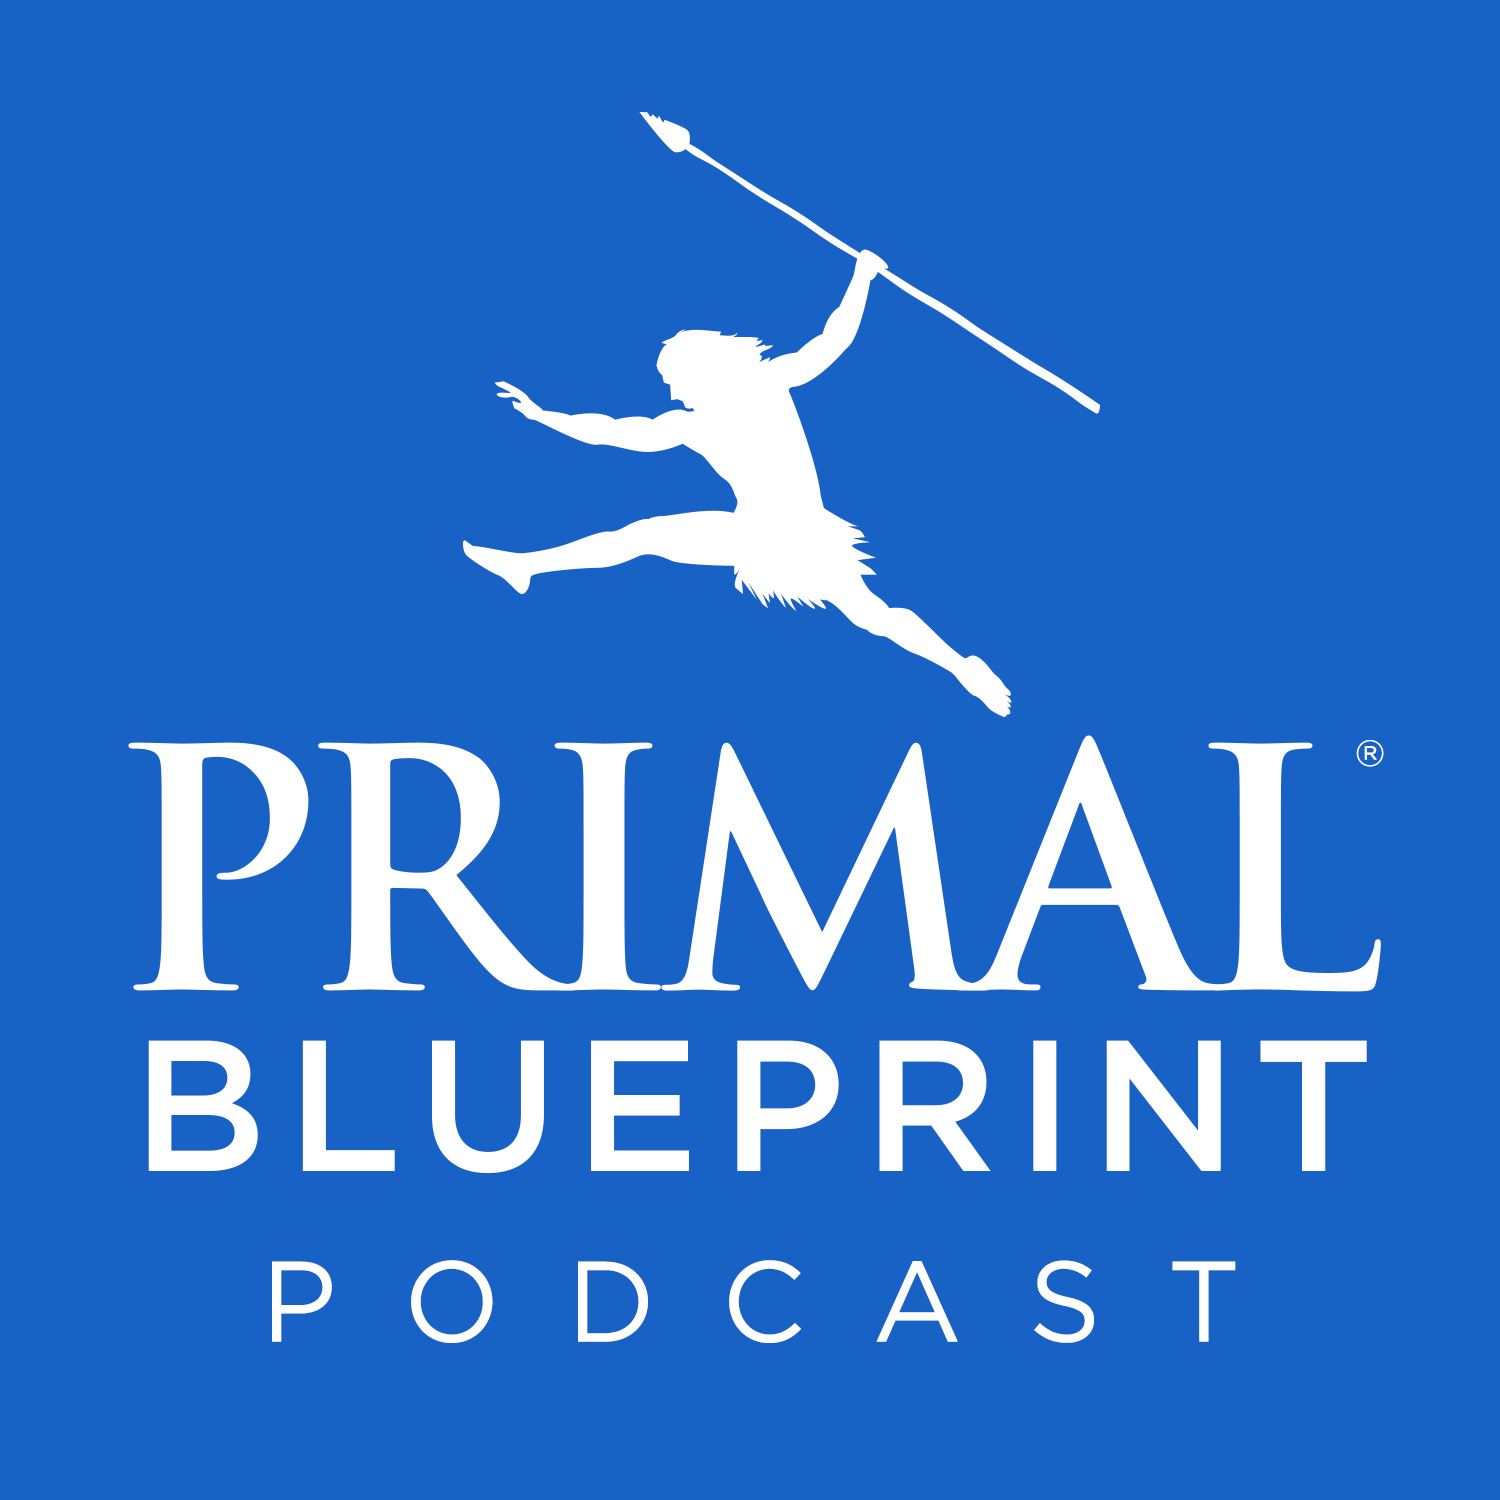 Primal Blueprint Podcast show art